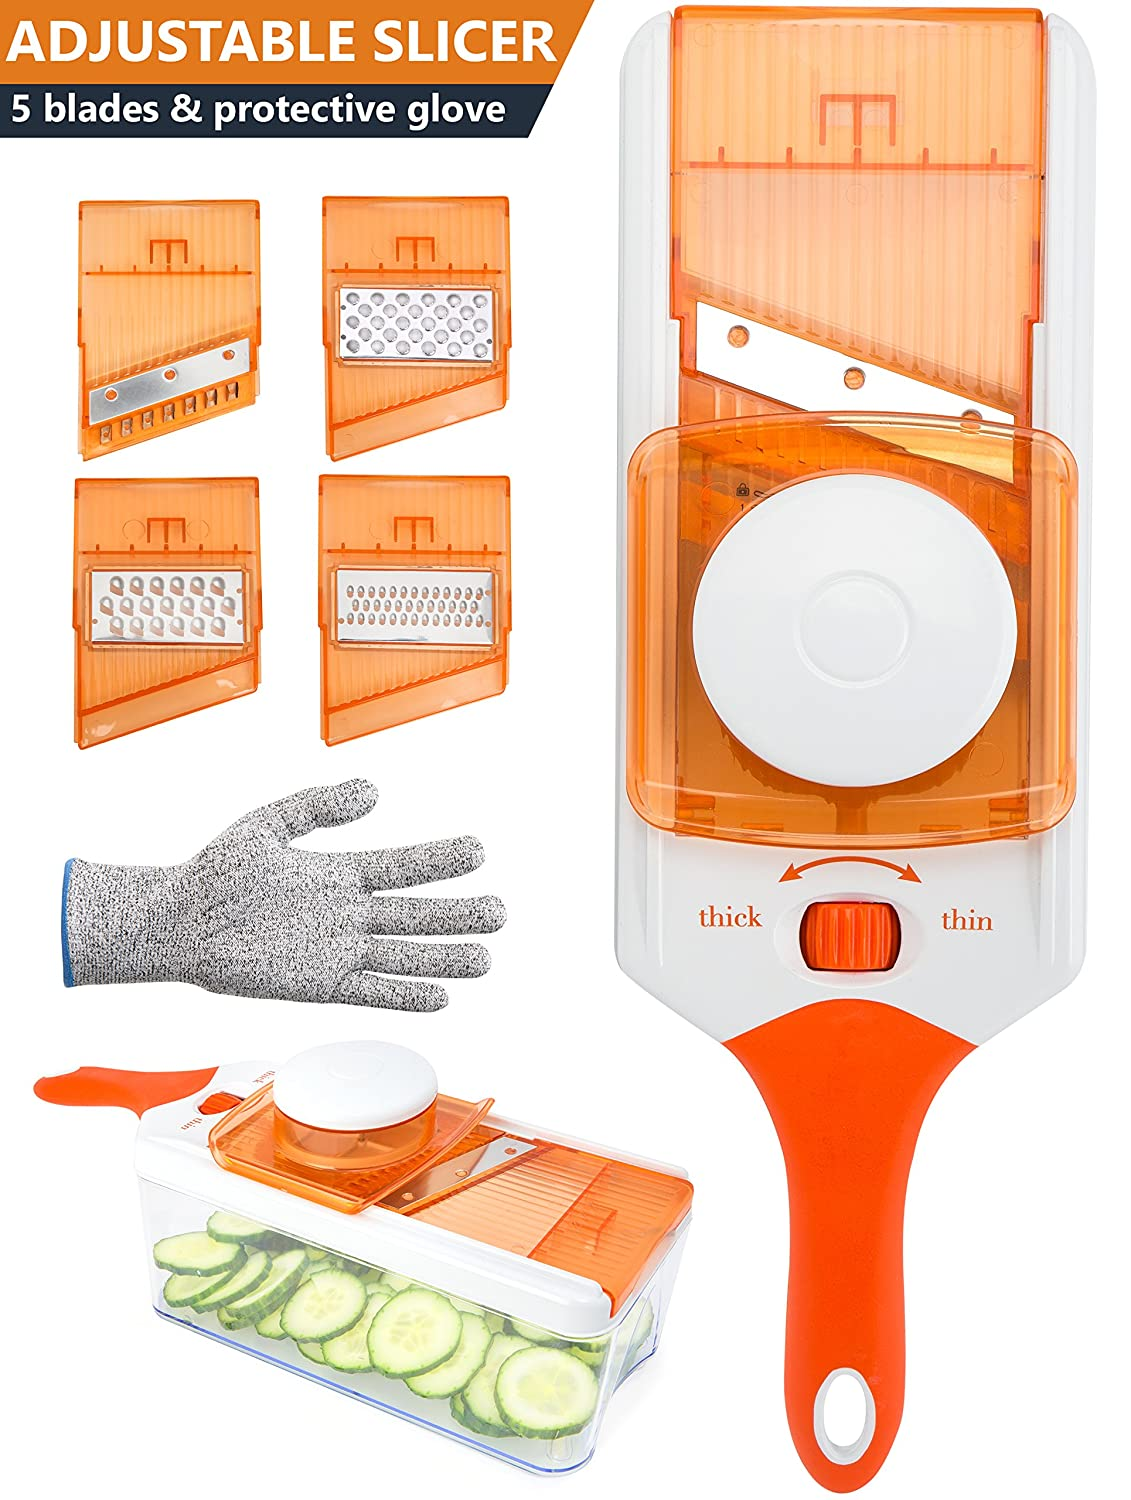 Adjustable Mandoline Slicer - Vegetable Cutter, Peeler, Slicer, Grater & Julienne Slicer